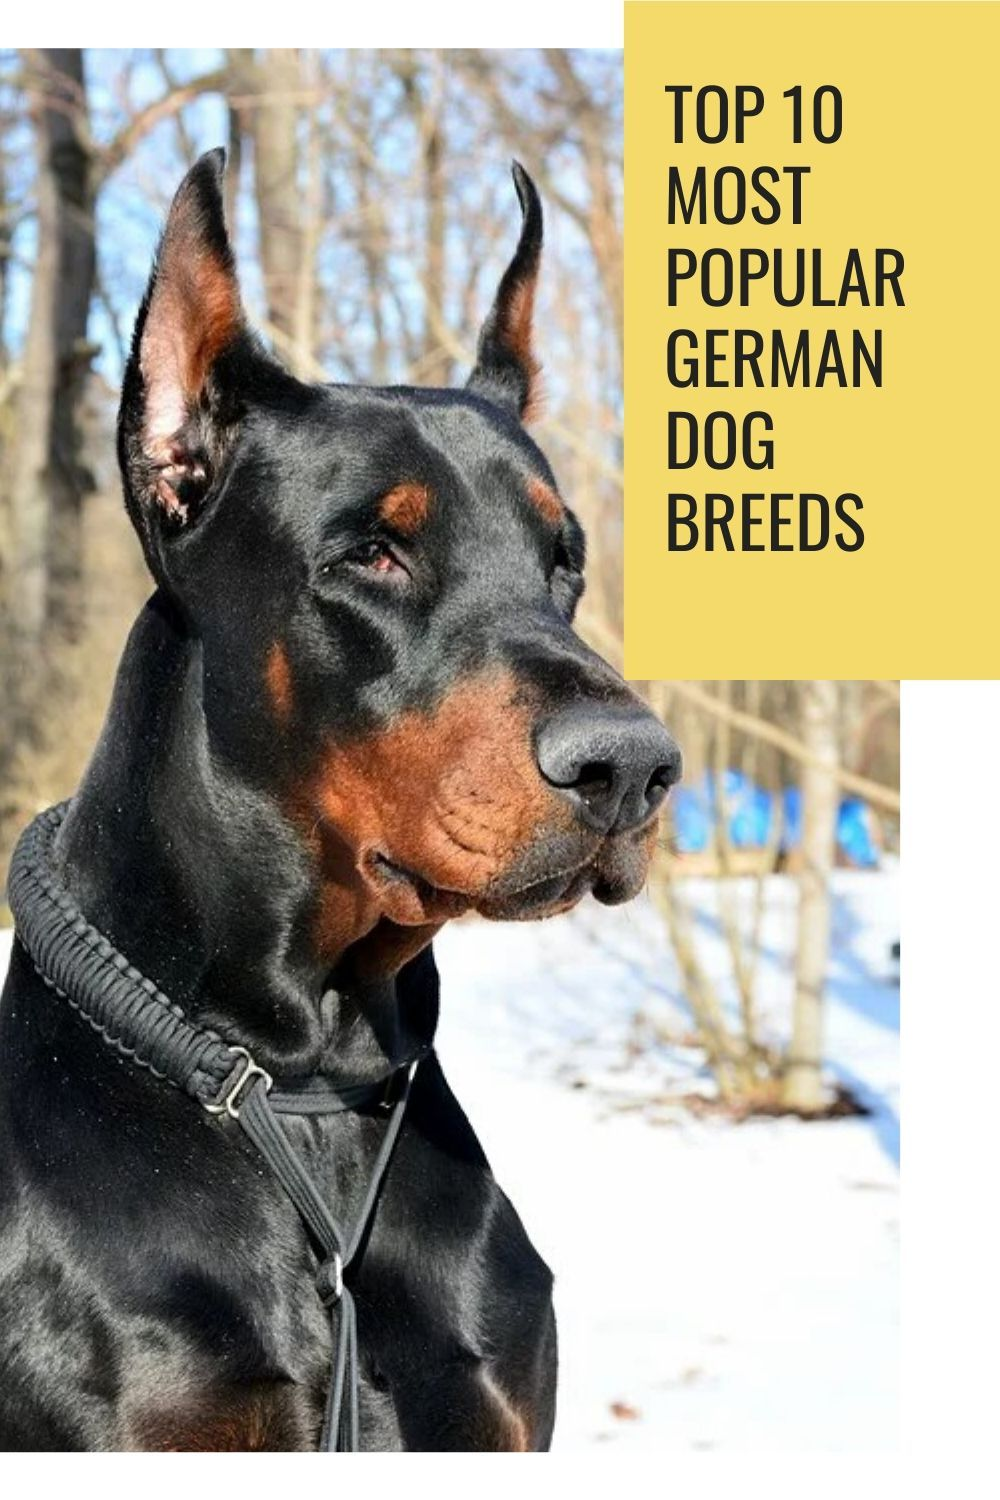 Pin by Abby Stini on dogs in 2020 German dog breeds, Dog